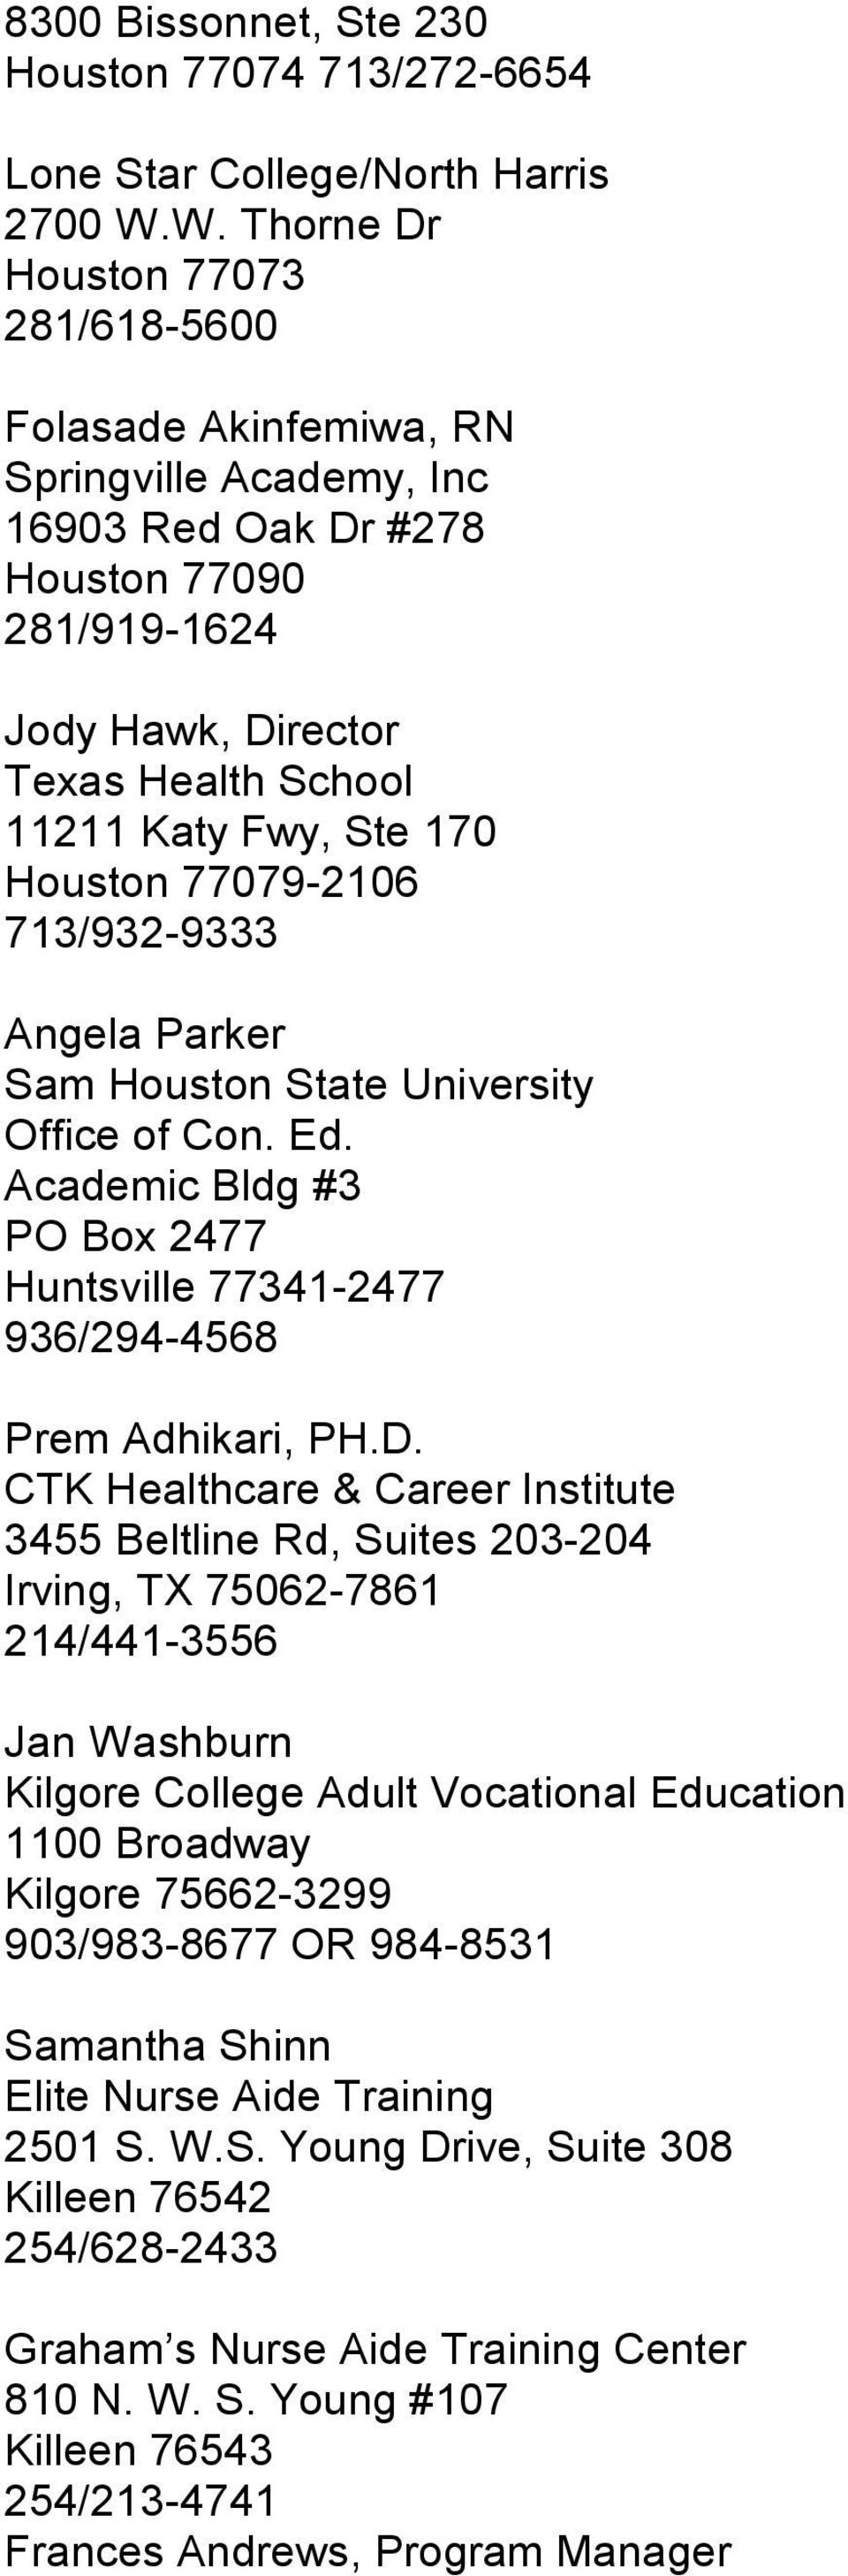 170 Houston 77079-2106 713/932-9333 Angela Parker Sam Houston State University Office of Con. Ed. Academic Bldg #3 PO Box 2477 Huntsville 77341-2477 936/294-4568 Prem Adhikari, PH.D.